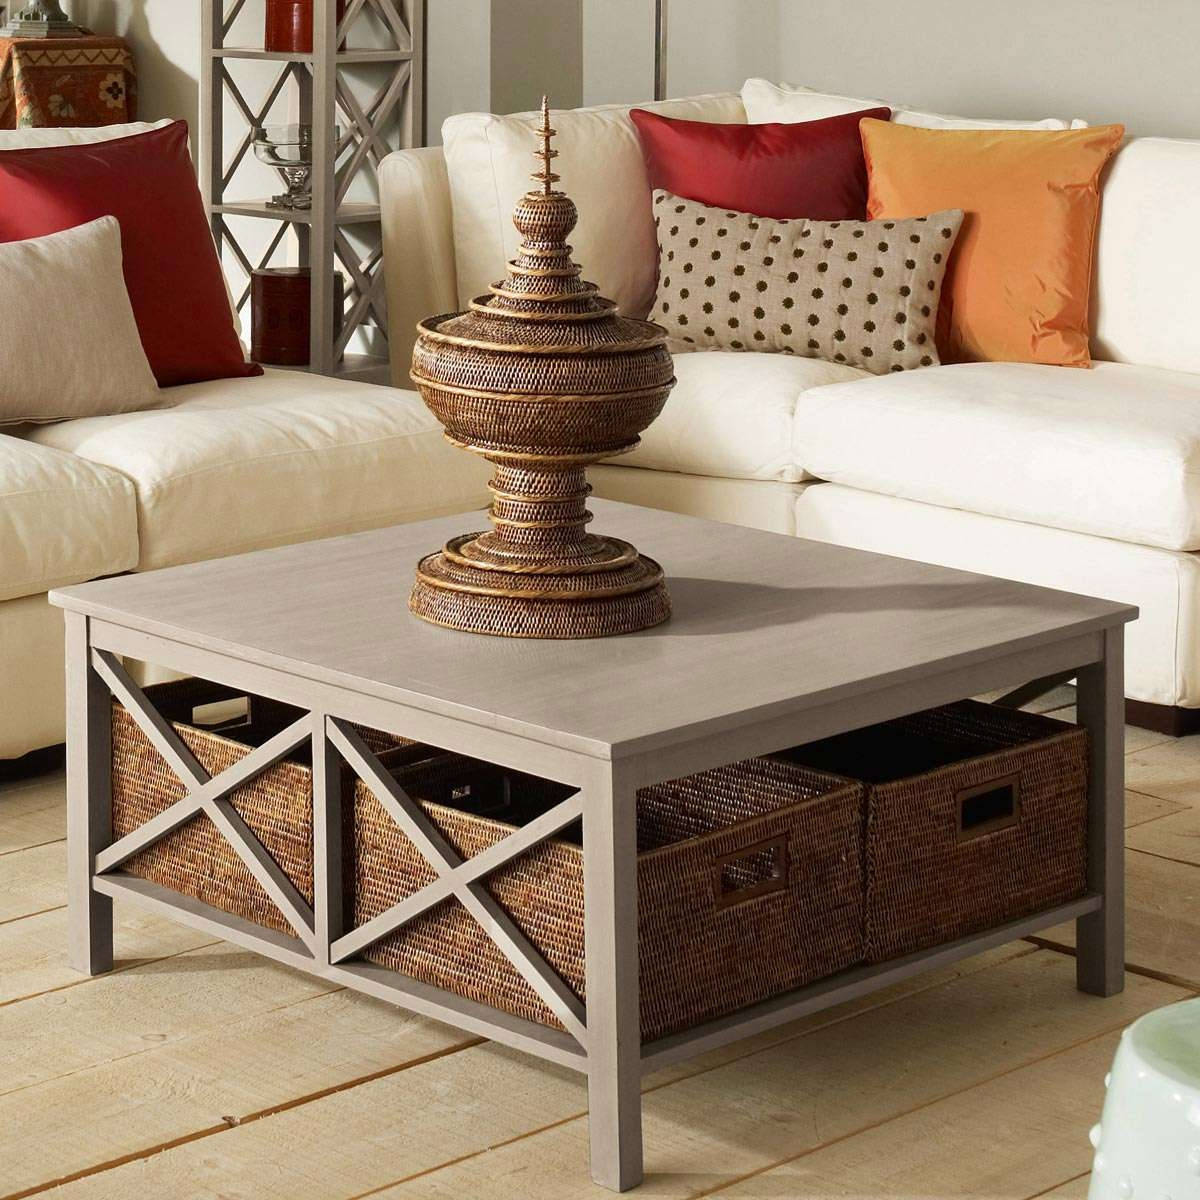 Round Coffee Table With Storage Rustic Home Decor Contemporary Inside Most Recently Released Round Coffee Tables With Storage (View 19 of 20)